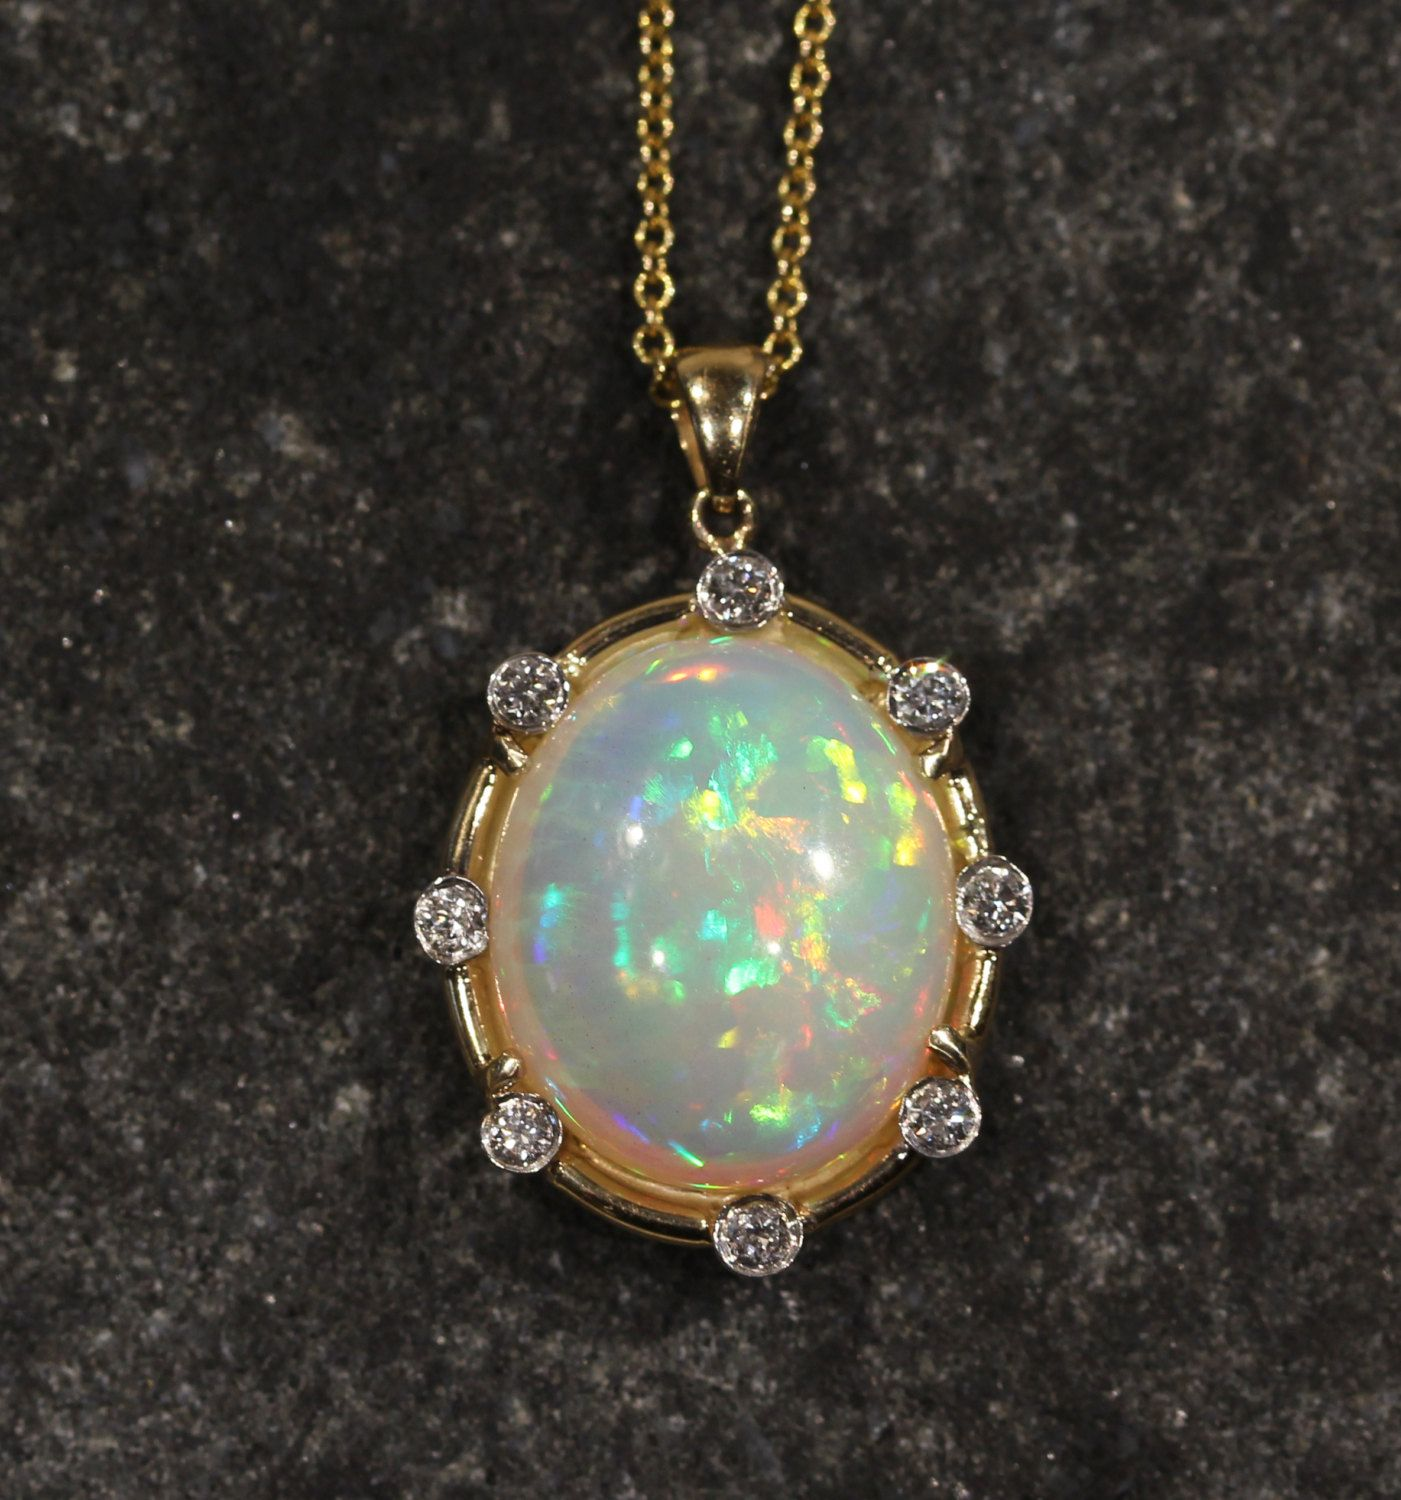 Natural opal pendant 14k yellow gold w diamonds custom necklace natural opal pendant 14k yellow gold w diamonds custom necklace gemstone jewelry 1293 aloadofball Image collections